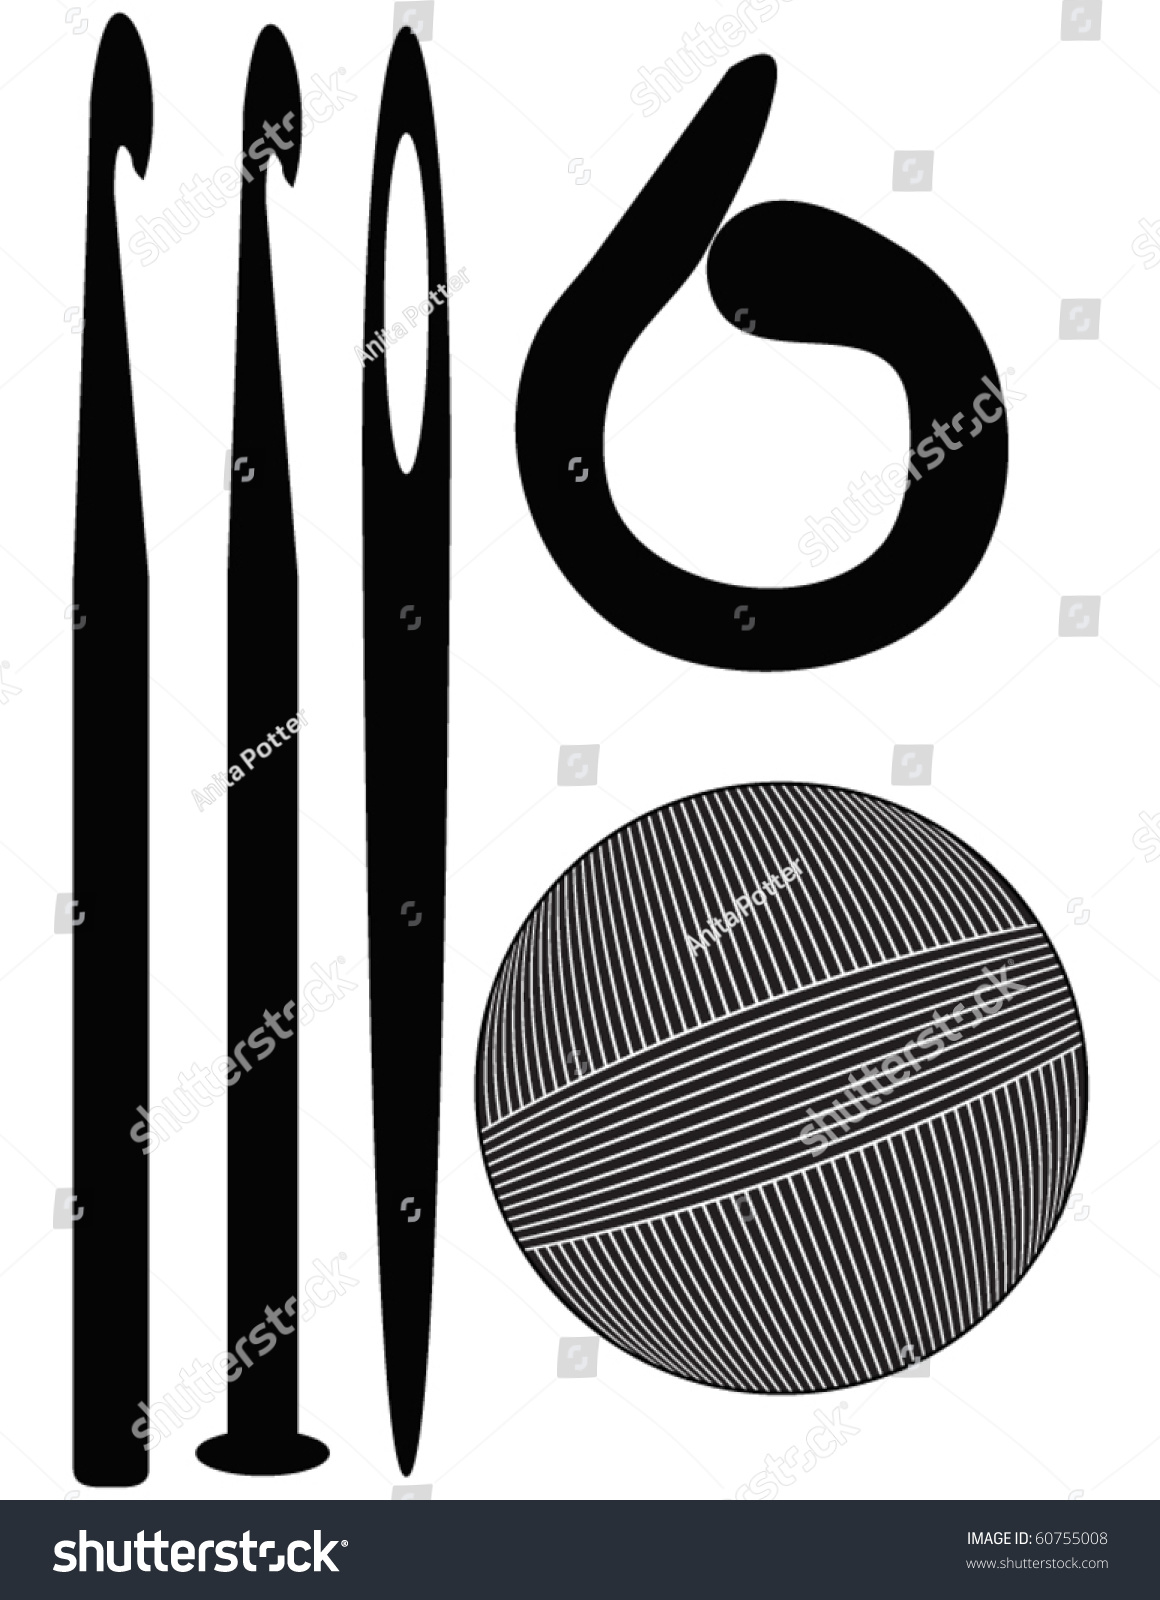 Crocheting Vector : Set Of Crochet Silhouettes Stock Vector Illustration 60755008 ...